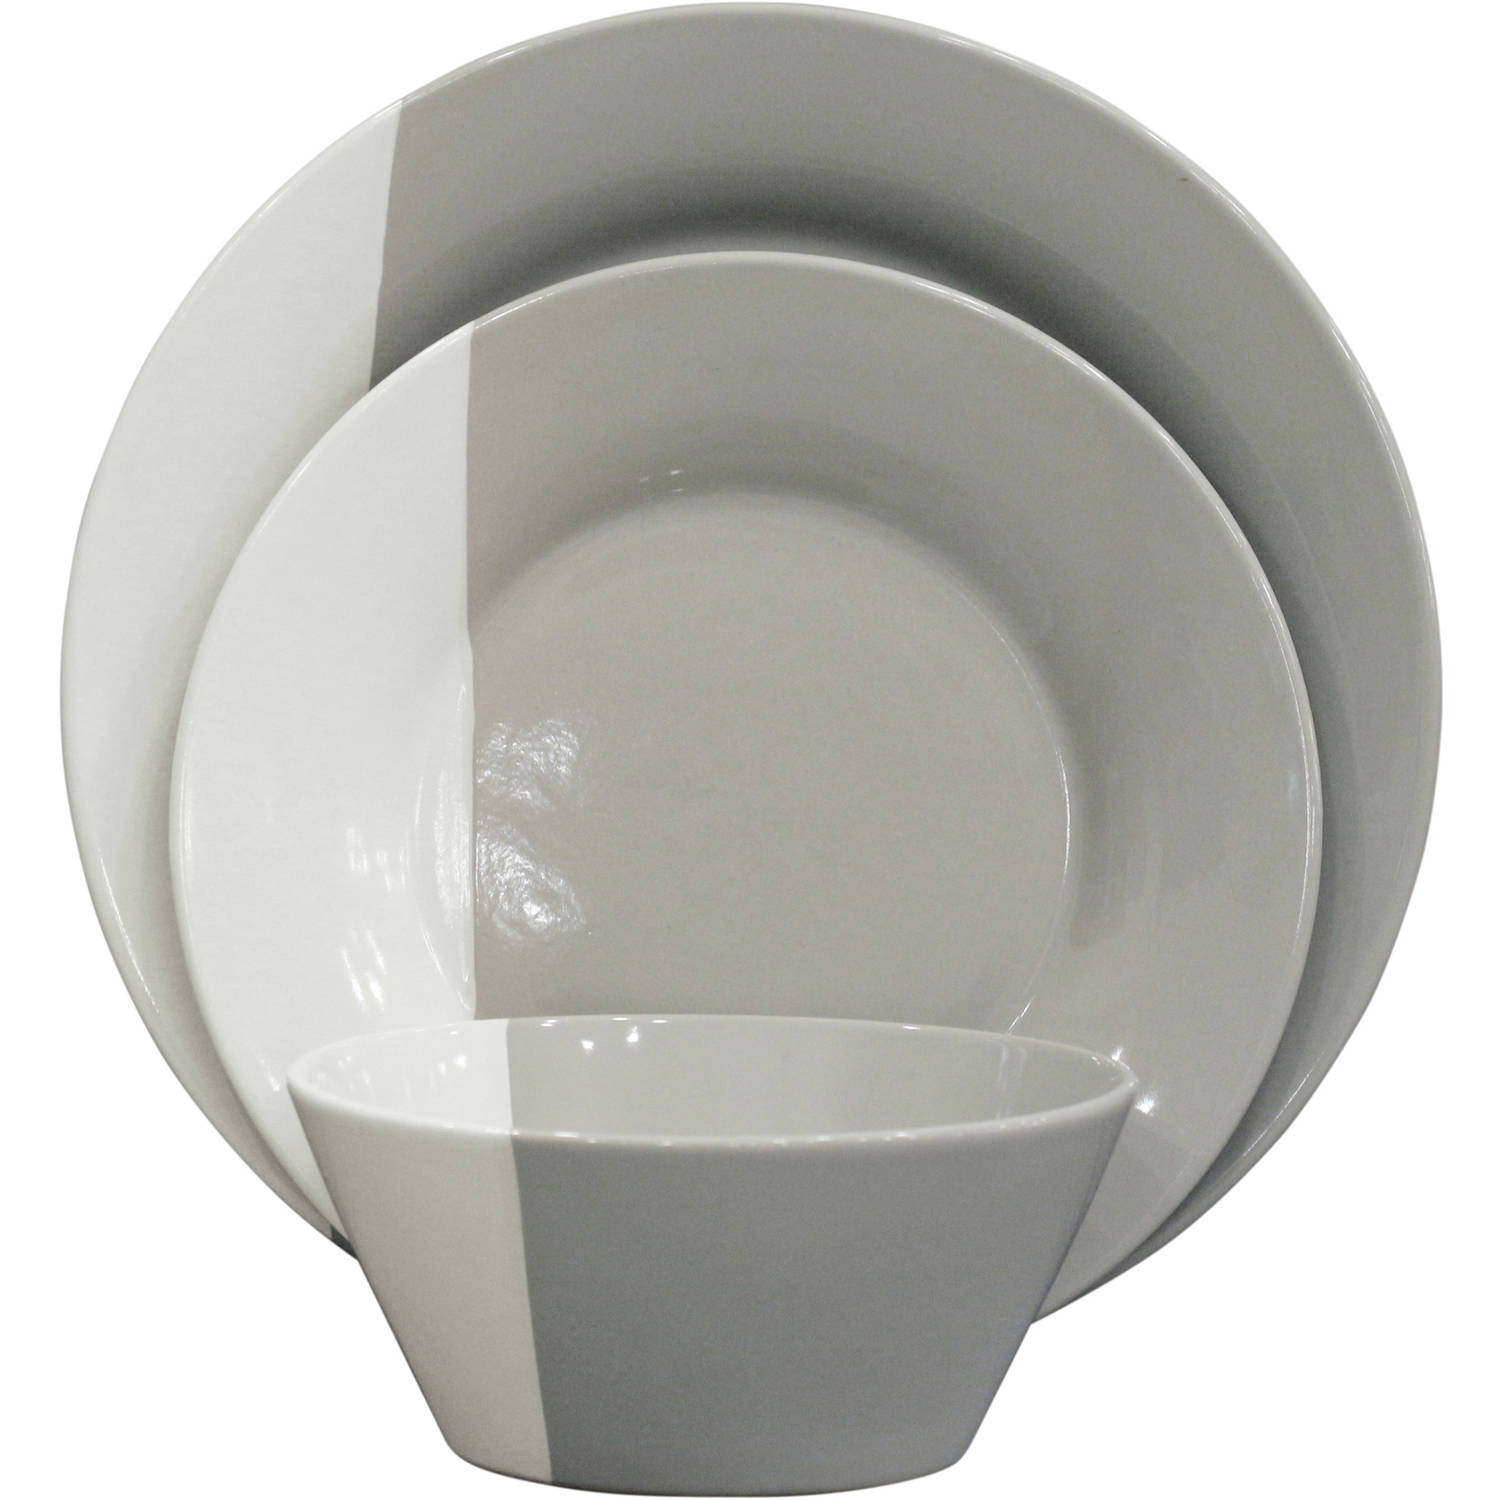 Better Homes and Gardens Color Dipped 12-Piece Dinnerware Set Grey  sc 1 st  Walmart & Waverly Dinnerware Sets